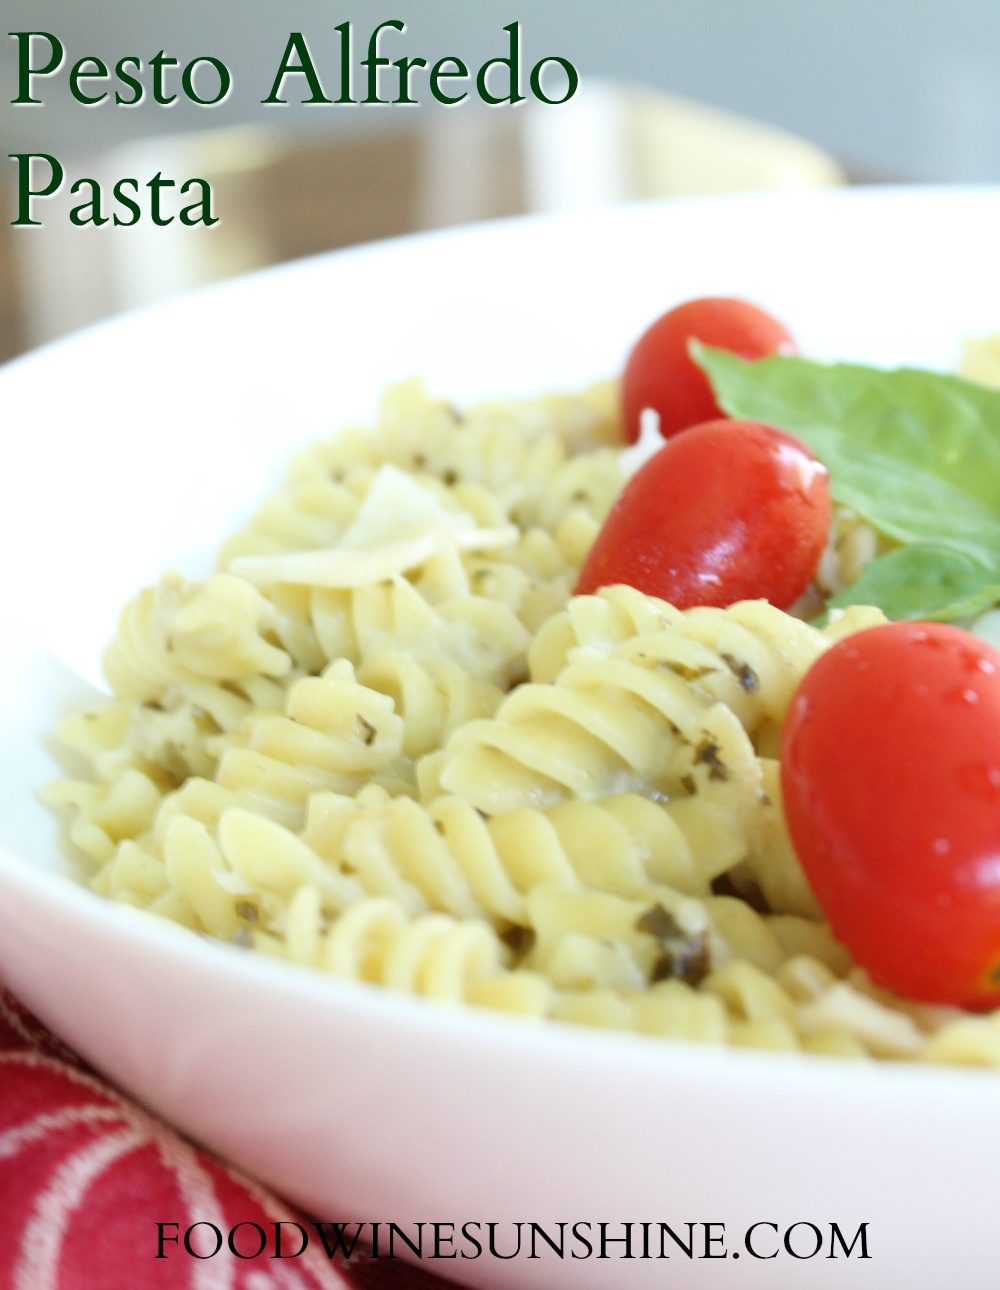 How to make Pesto Alfredo Pasta